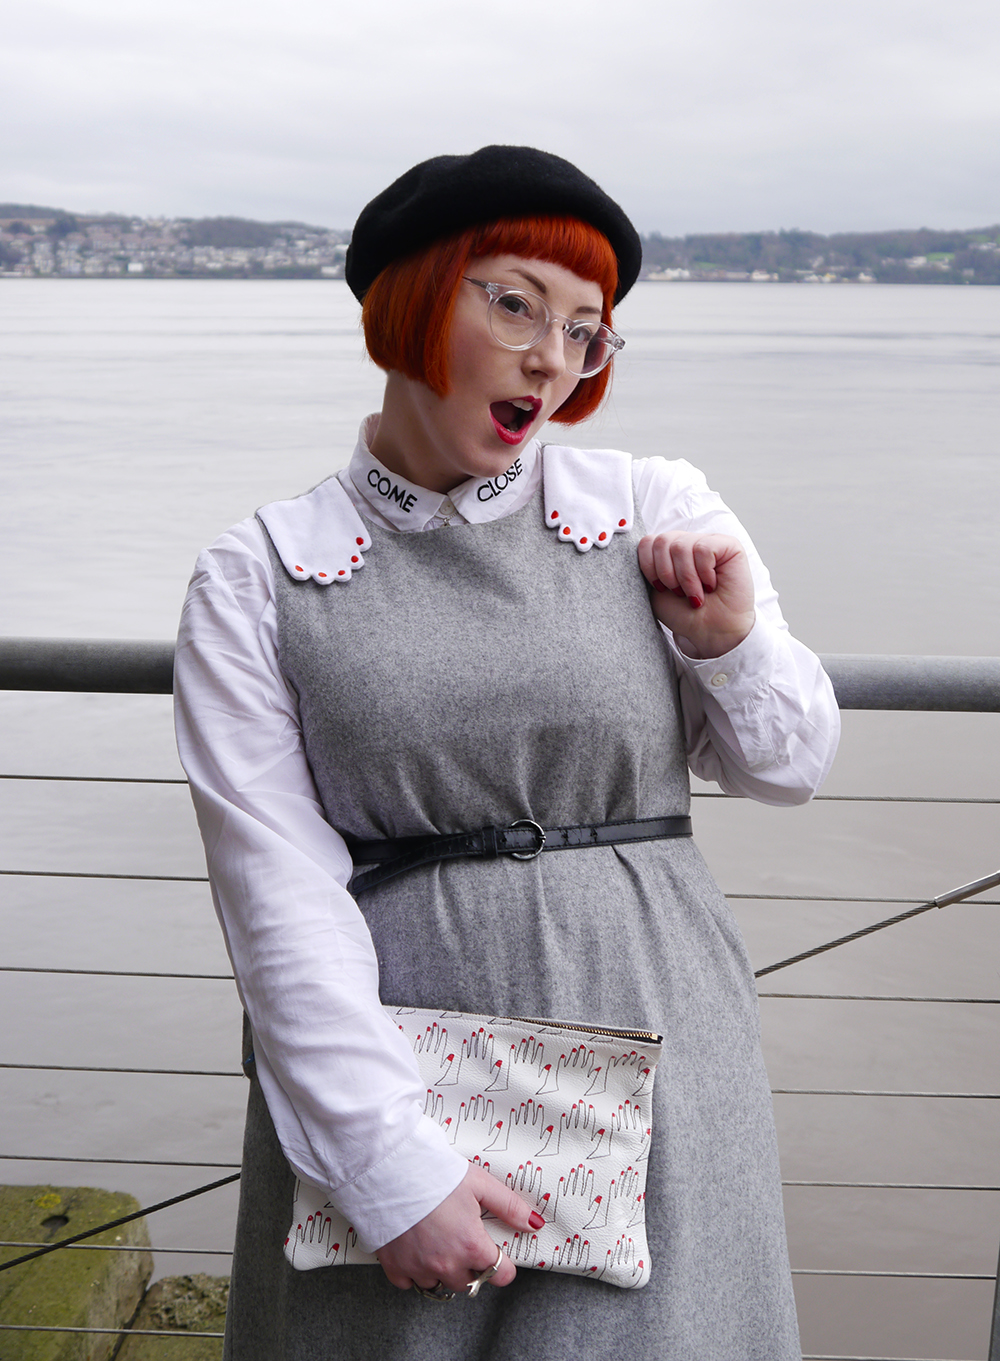 Scottish blogger, red head, ginger hair, pinafore, school style, The Whitepepper hand dress, white Monki come close shirt, black beret, clear Iolla glasses, hand print clutch bag, Falconwright printed leather clutch bag, Ted & Muffy black pointed boots, Cheap Frills best friend necklace, best withces, silver hand rings